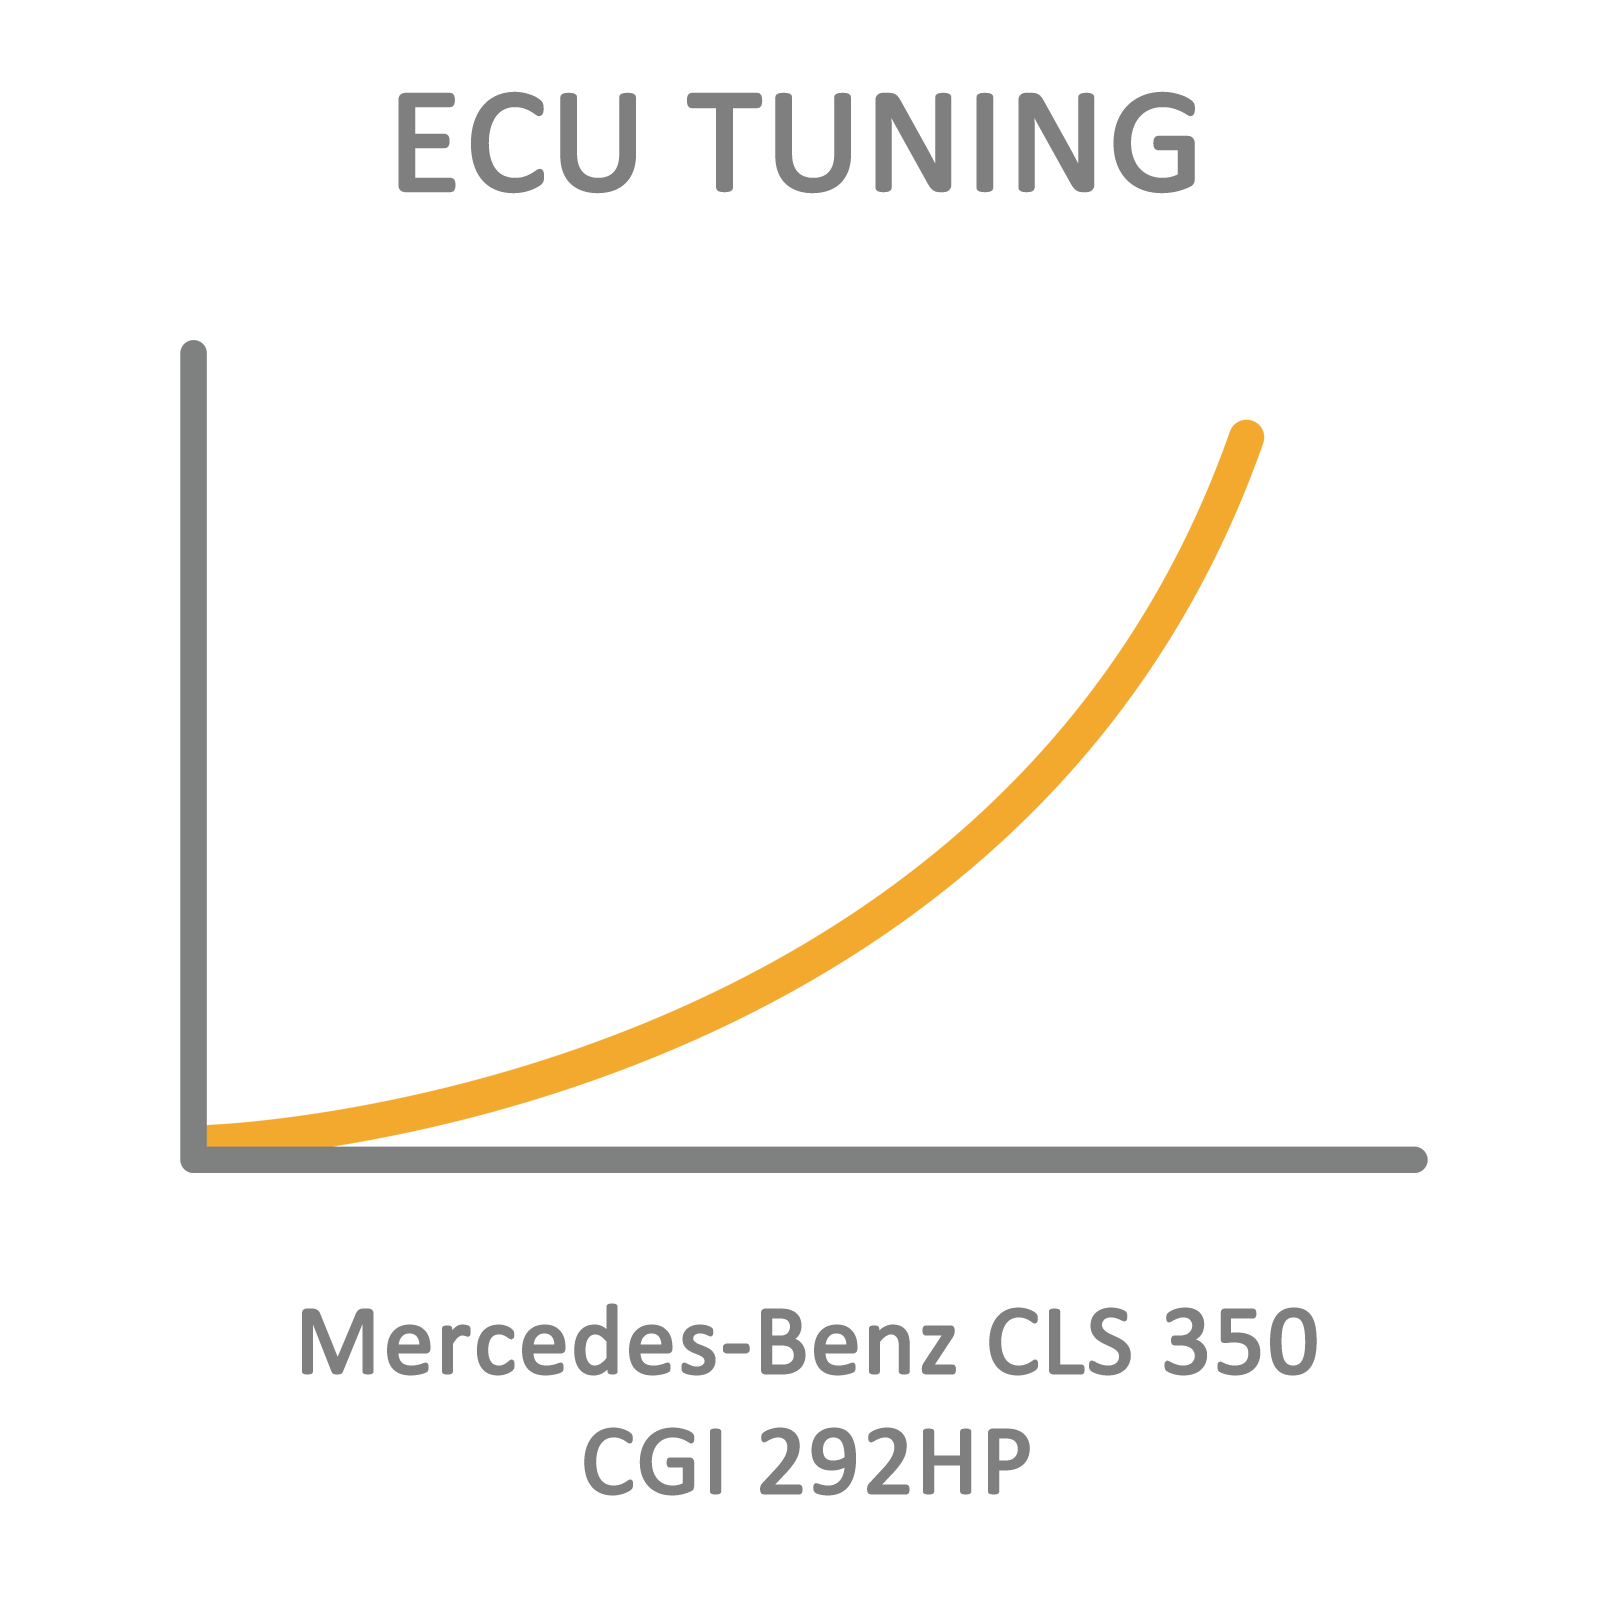 Mercedes-Benz CLS 350 CGI 292HP ECU Tuning Remapping